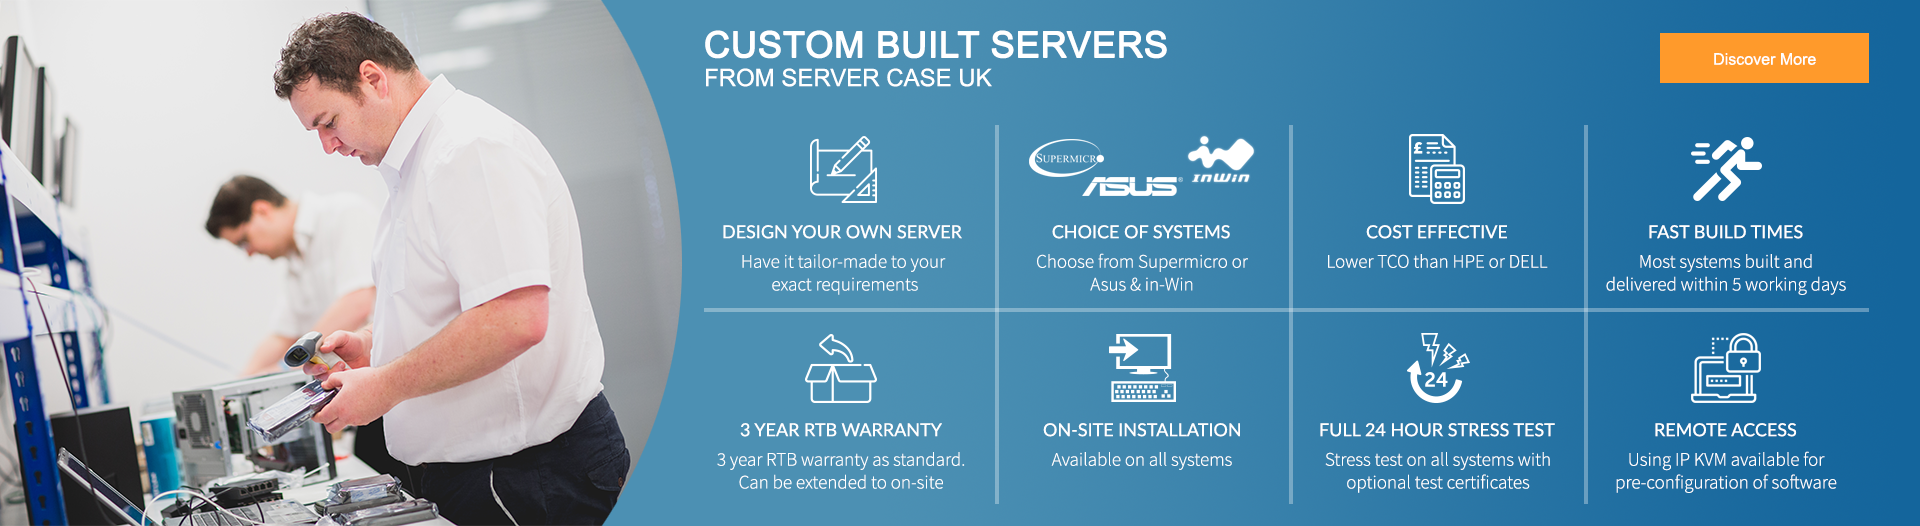 Custom Built Servers from Server Case UK